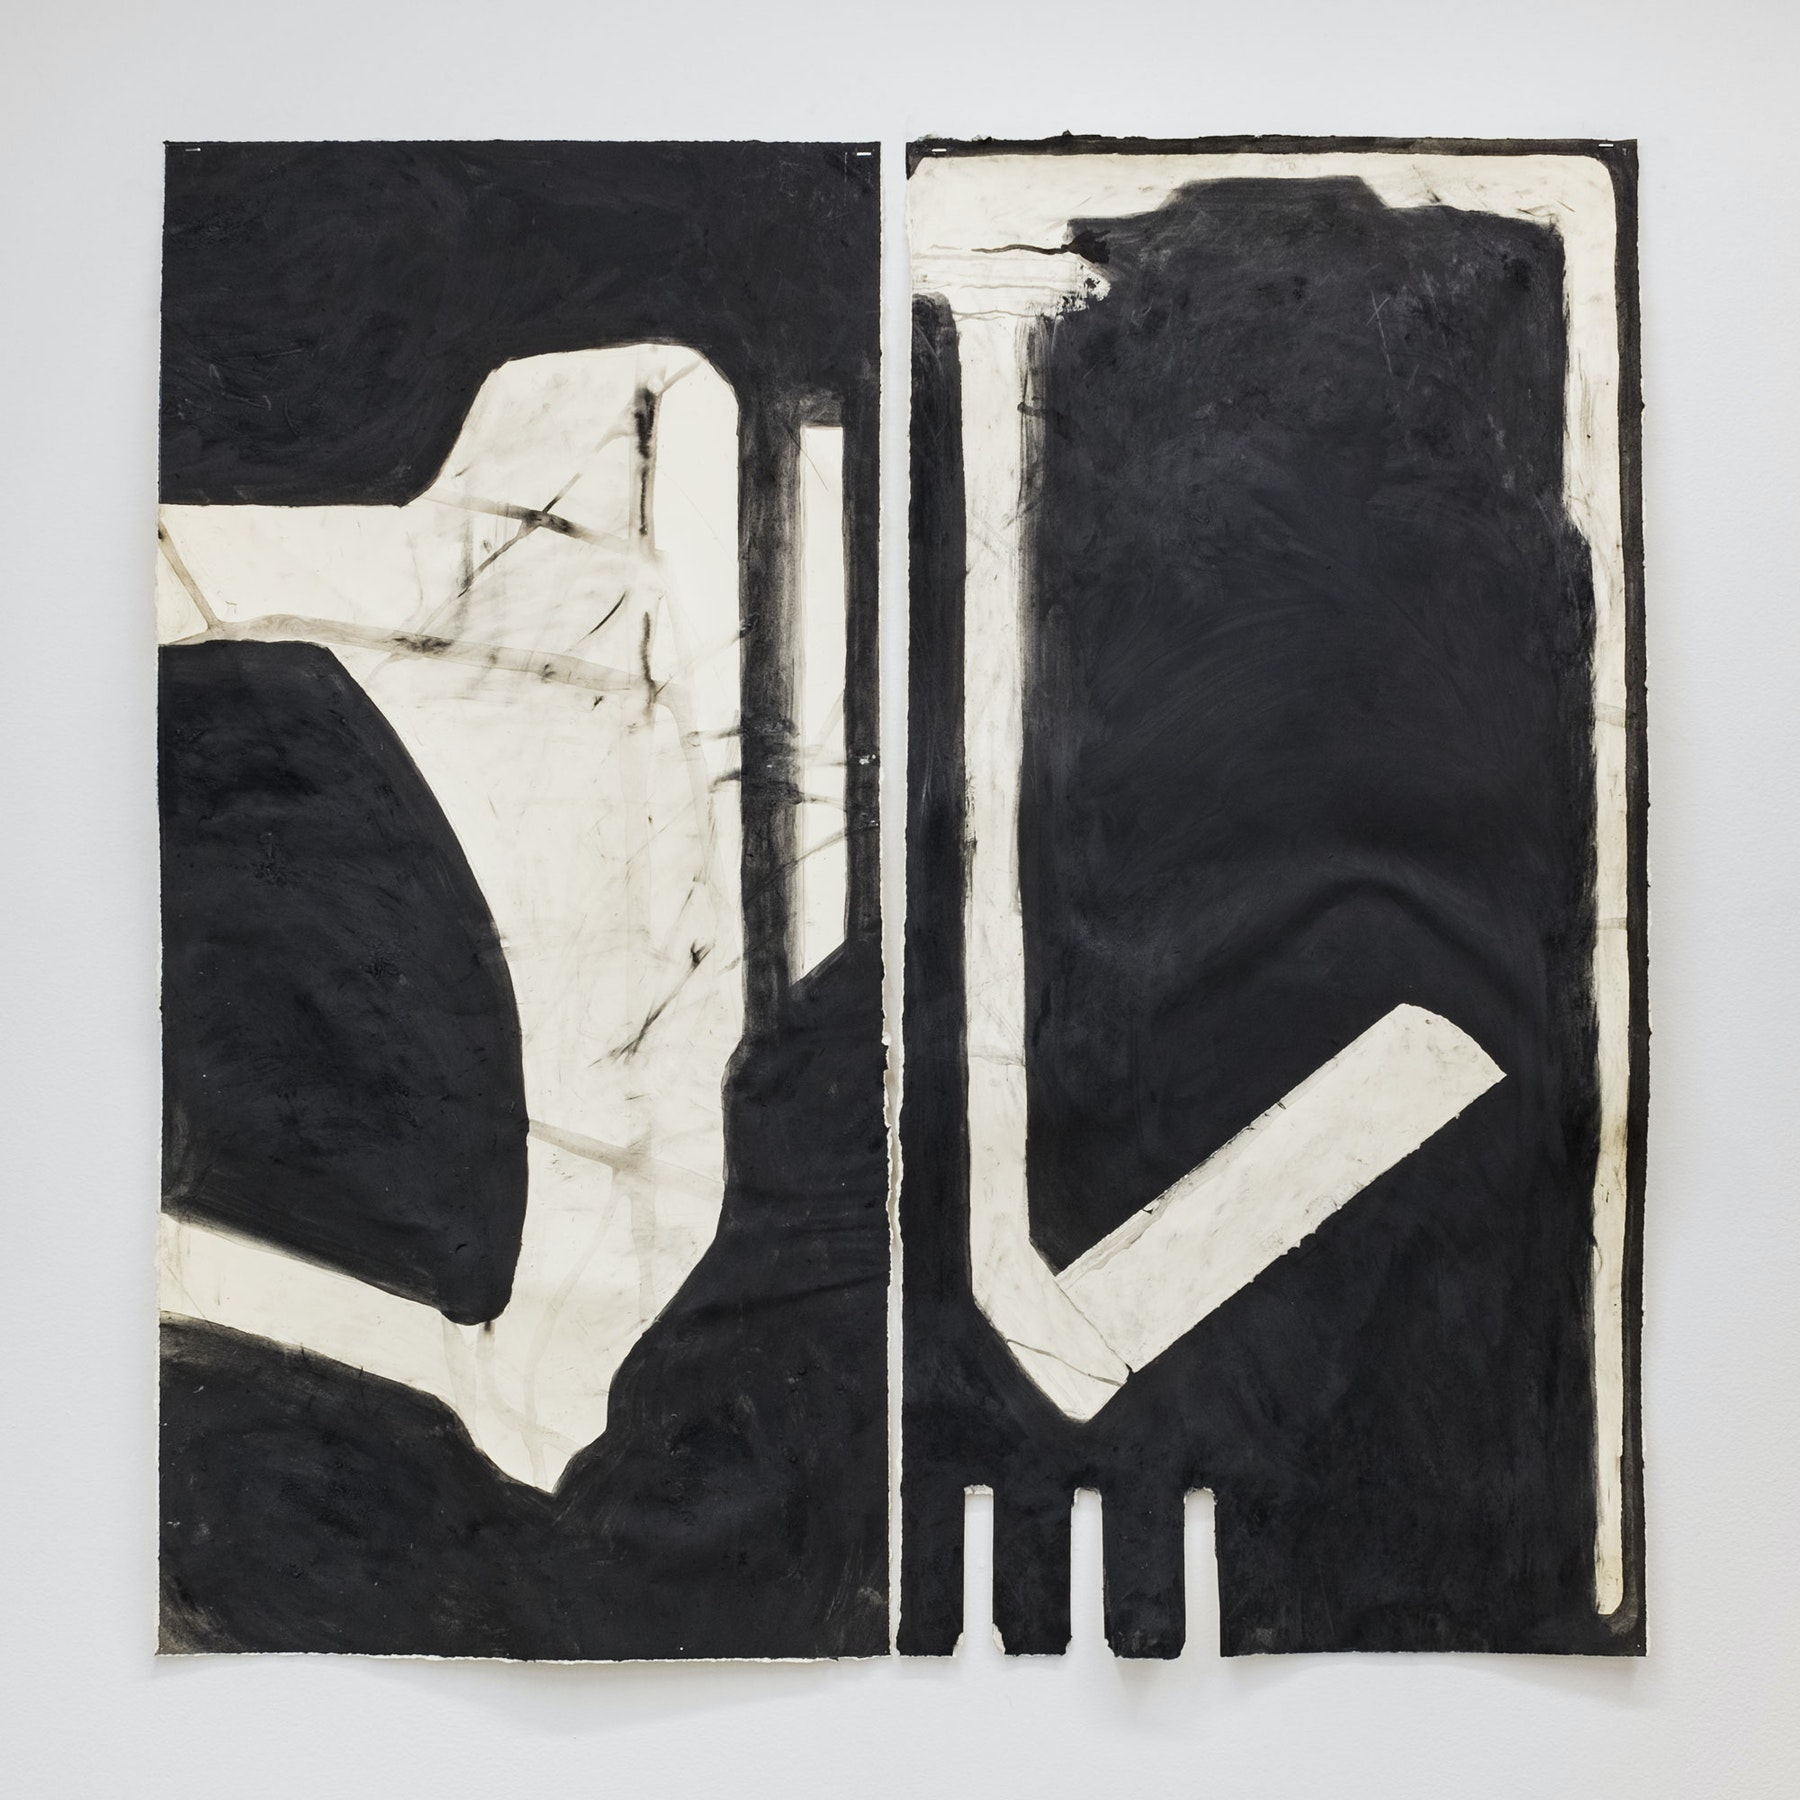 Aerial Map No.3, Diptych for Two Performances by Kara Rooney